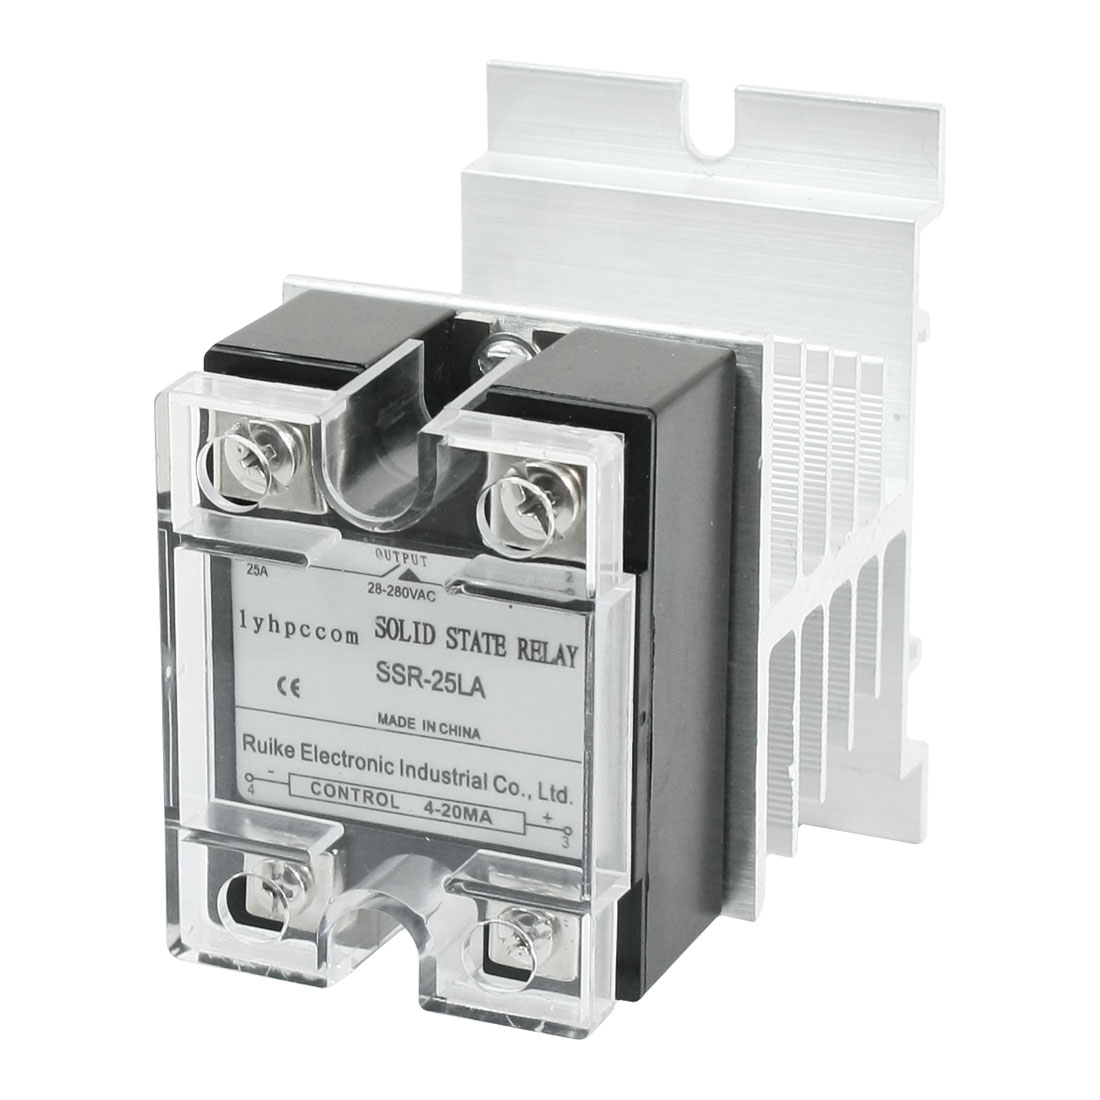 SSR-25LA 4-20mA to AC 28-280V 25A 4 Screw Terminal Single Phase Clear Cover Solid State Relay w Aluminum Heat Sink